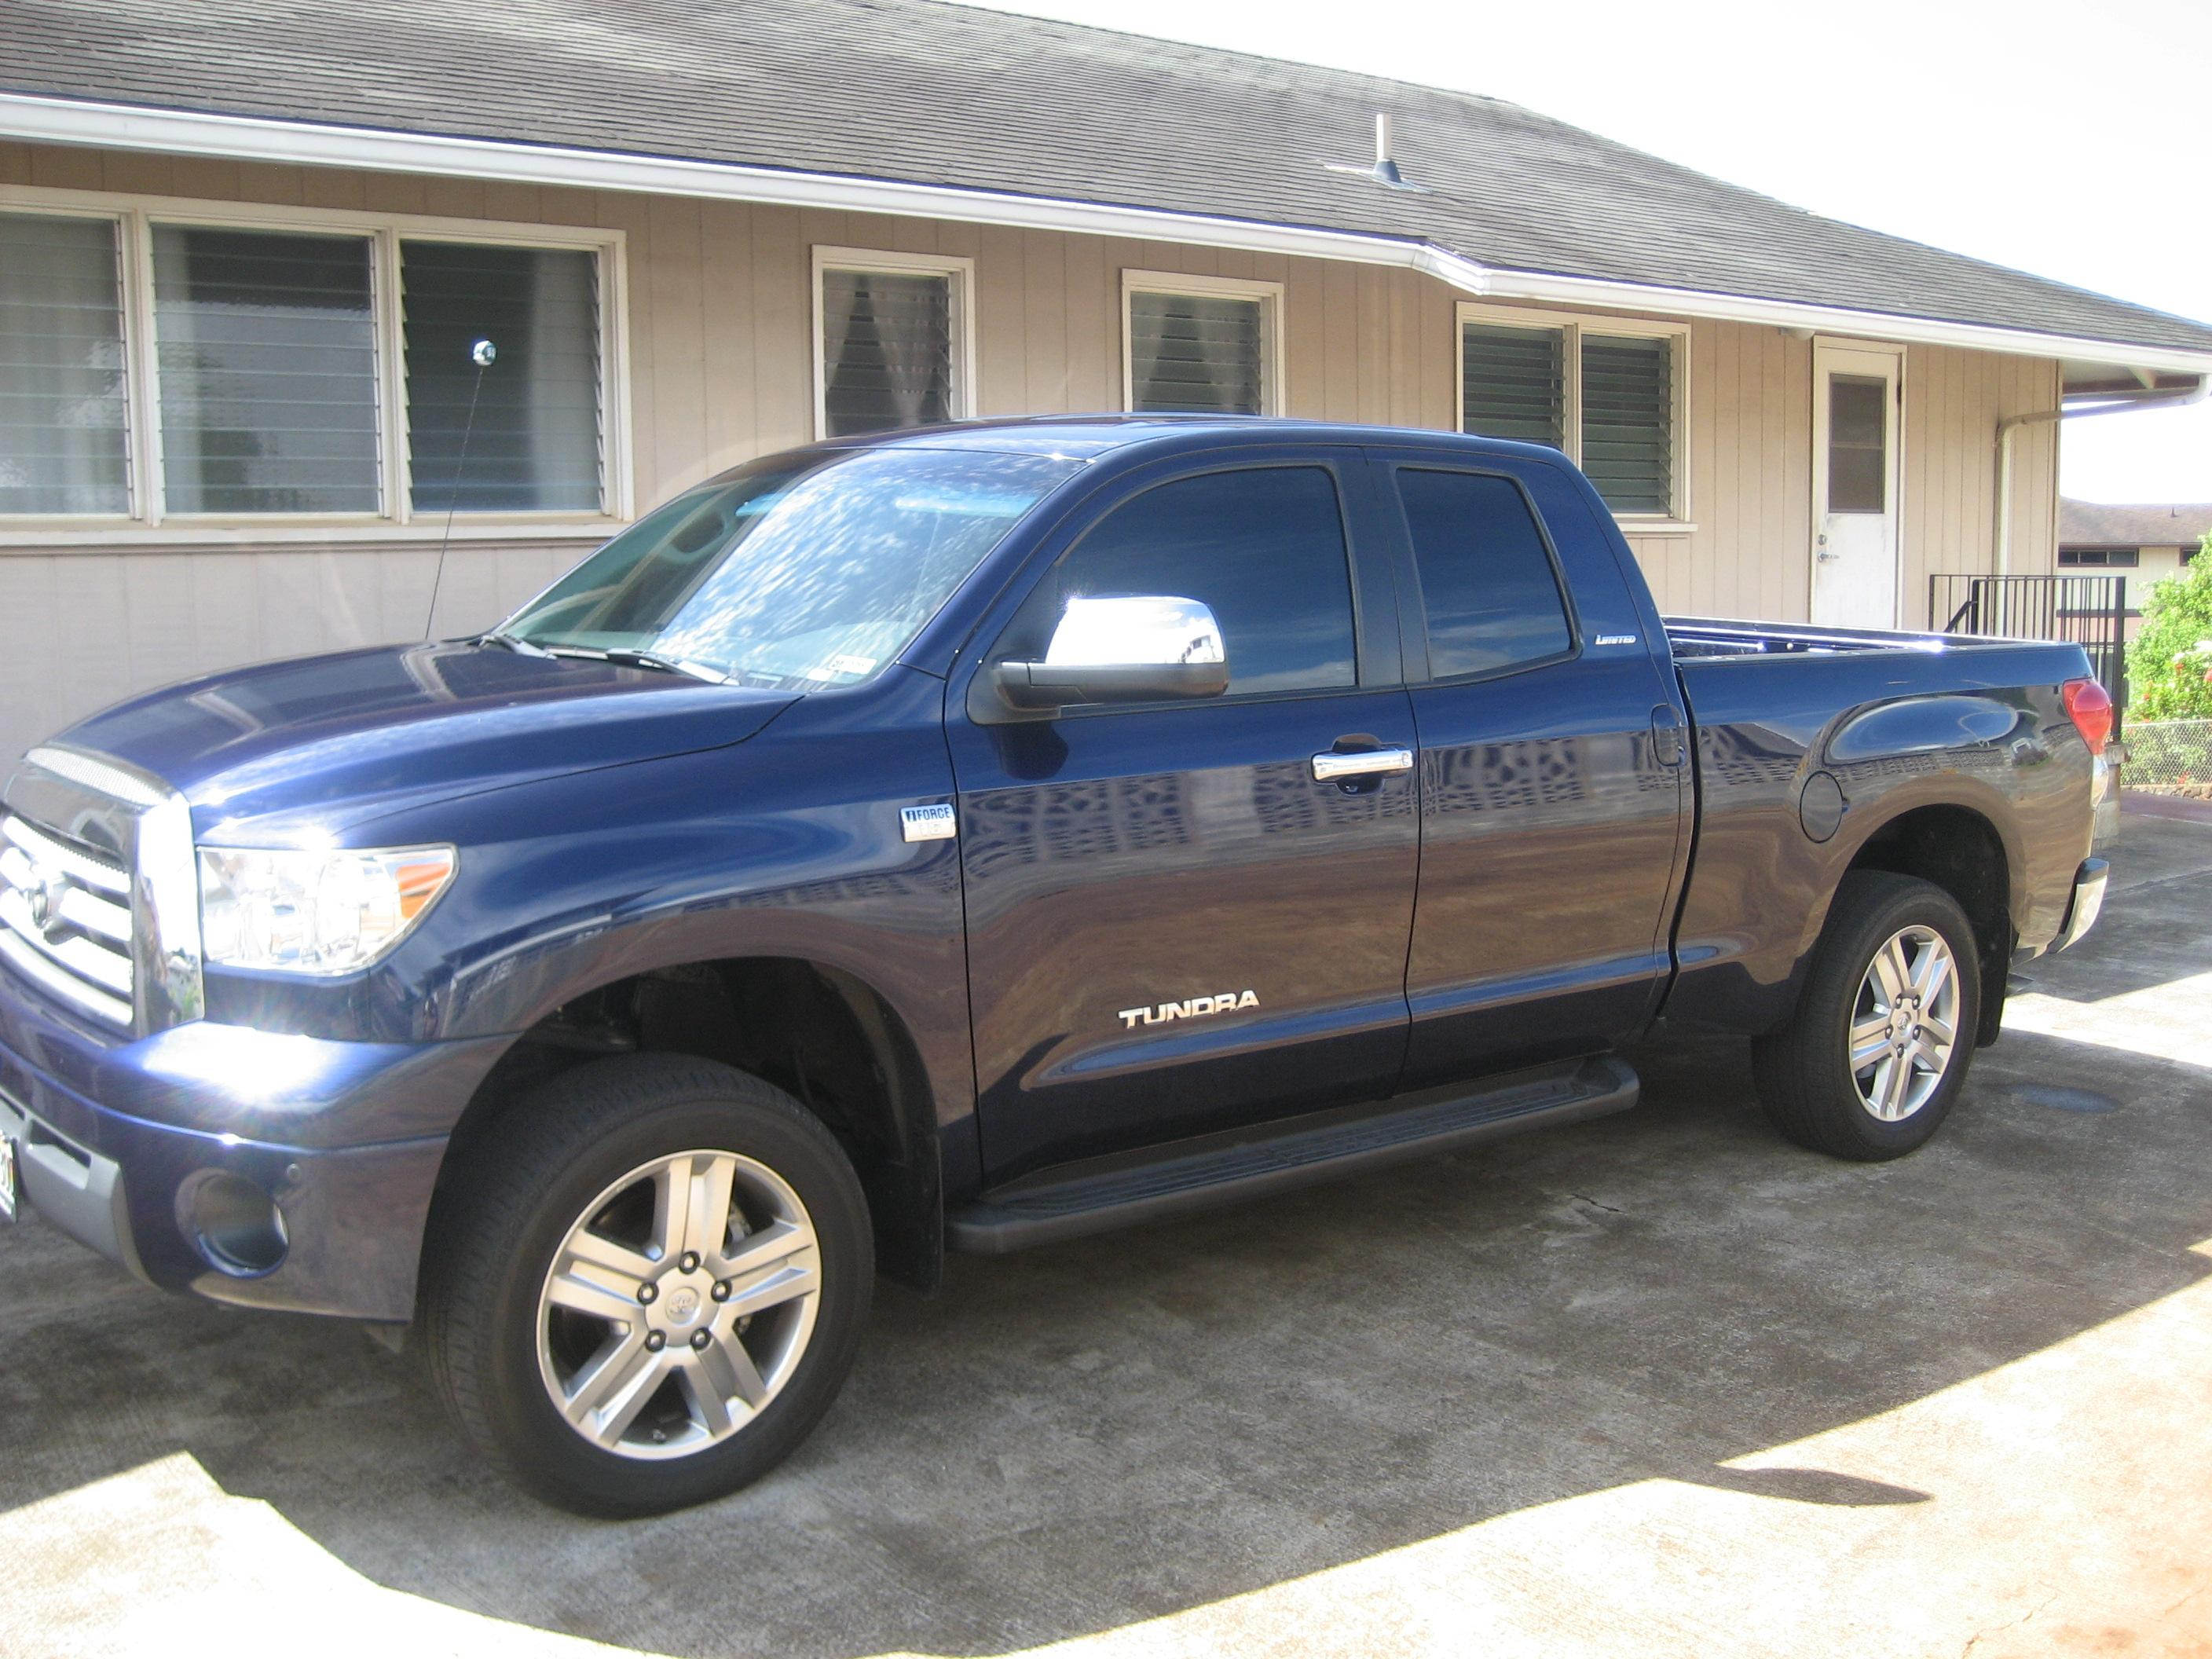 drayden 2008 toyota tundra double cab specs photos modification info at cardomain. Black Bedroom Furniture Sets. Home Design Ideas